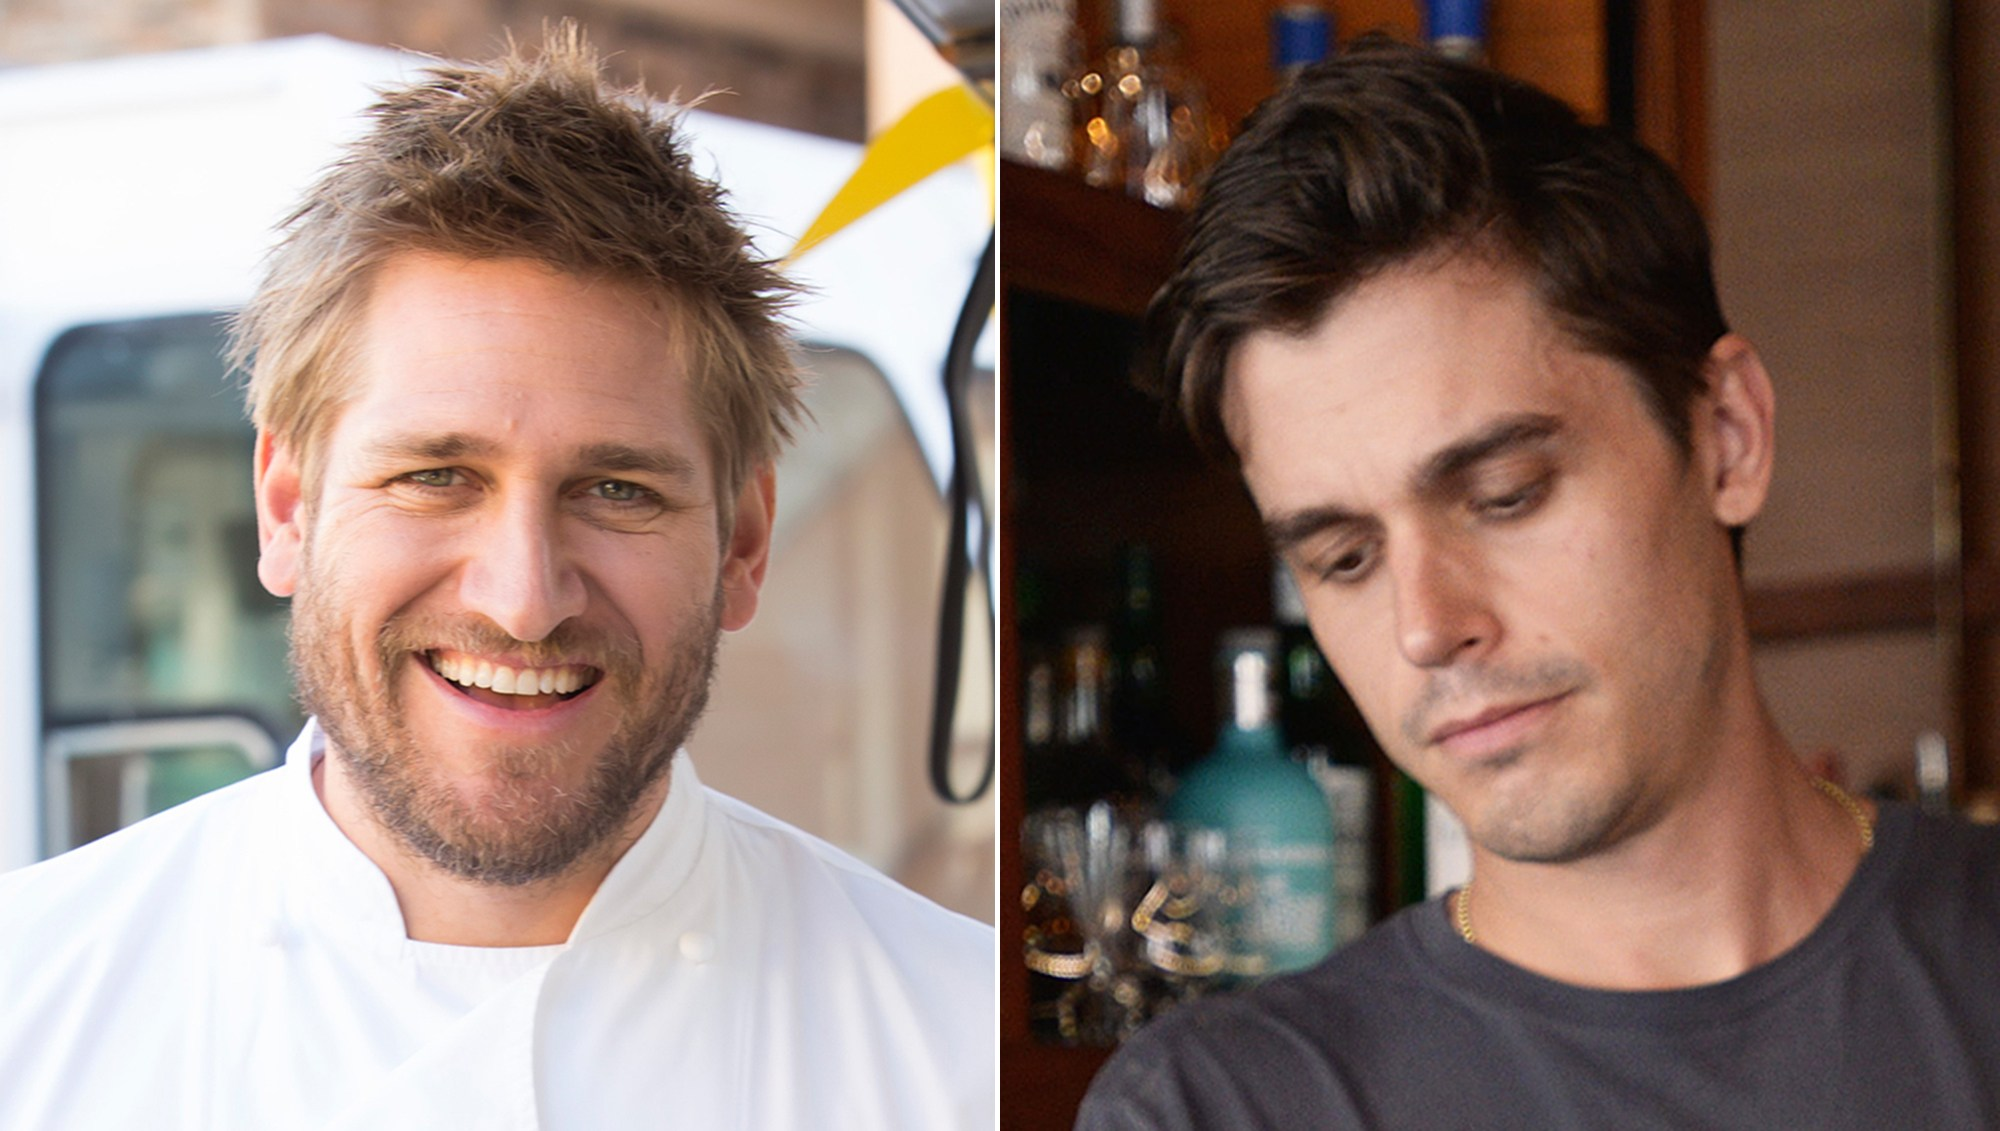 Hottest Male Chefs: Curtis Stone, Antoni Porowski and More